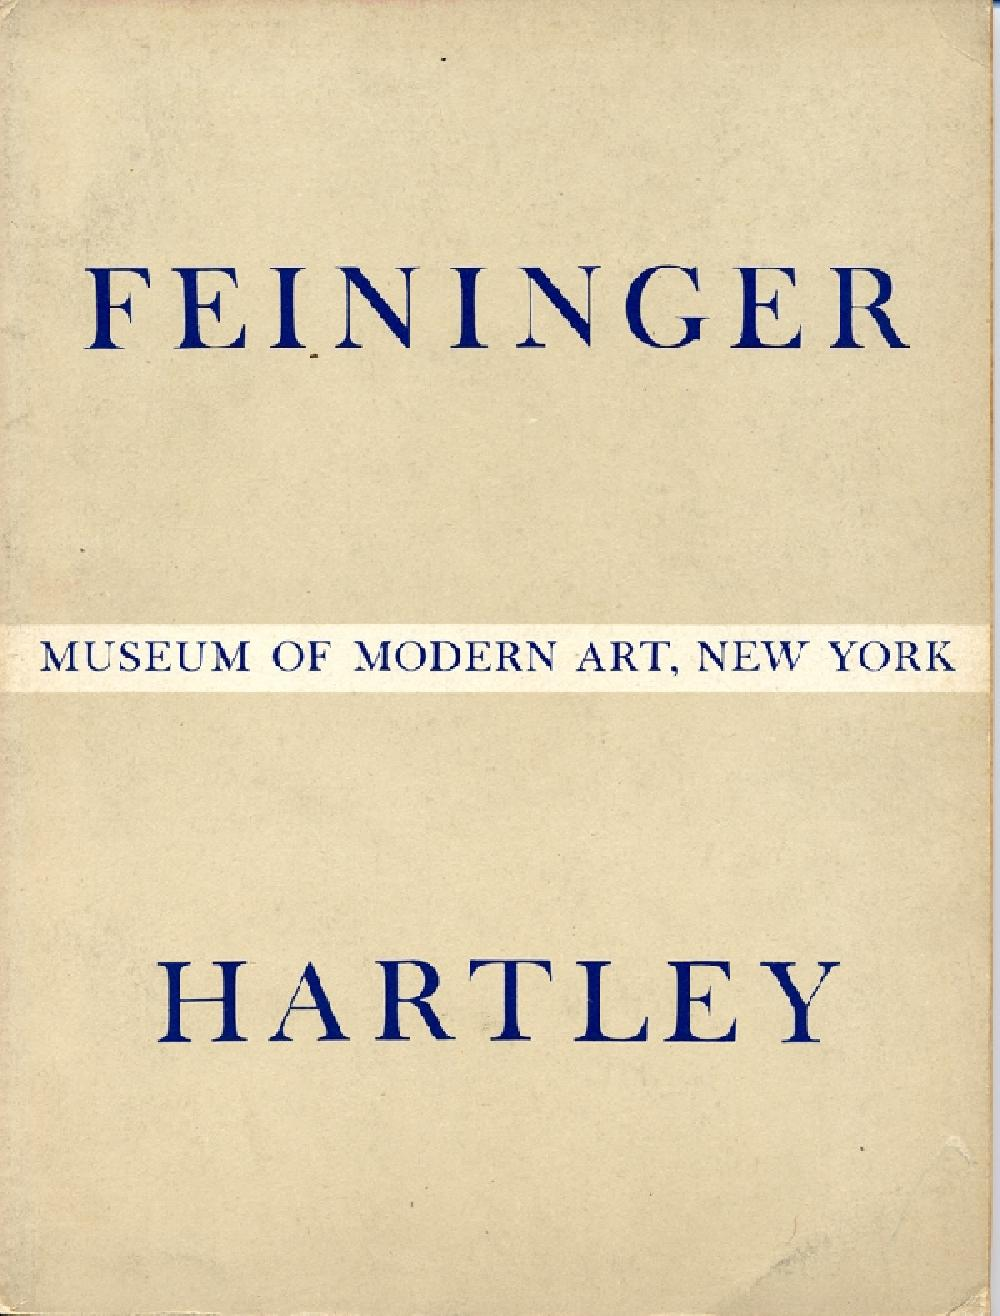 Feininger-Hartley